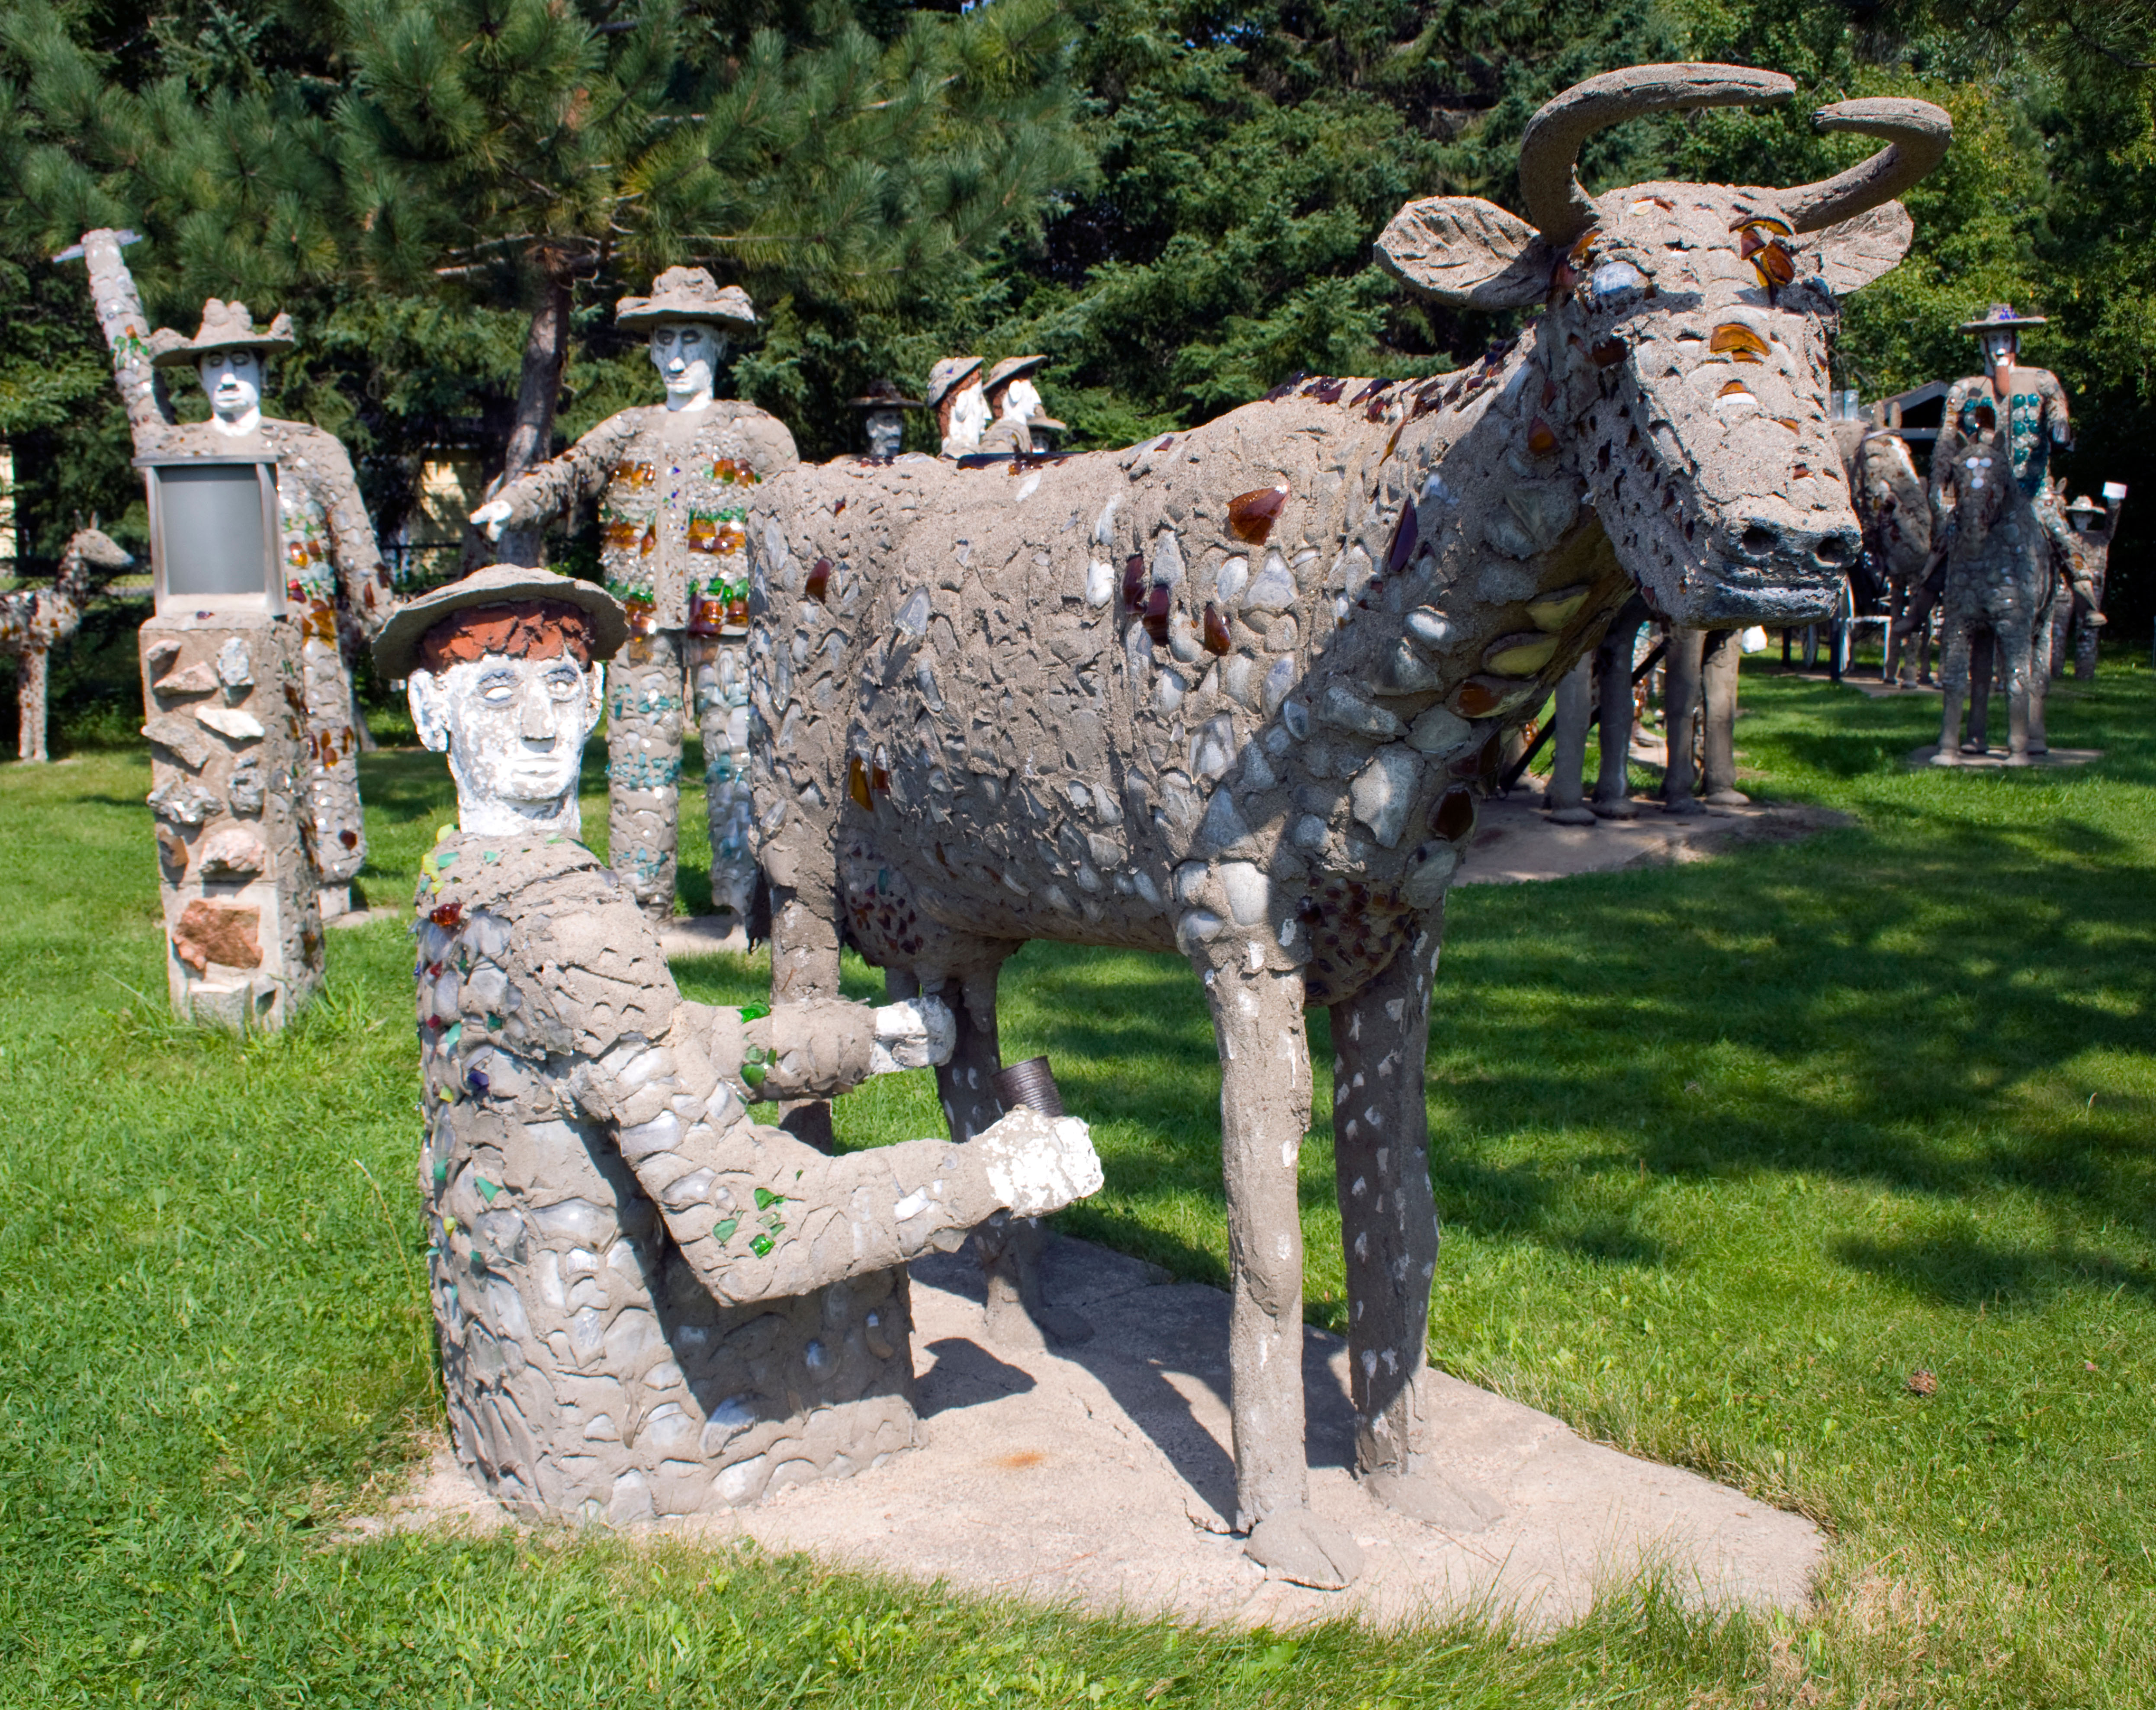 Folk-art concrete sculpture of a farmer milking a cow; other concrete statues in background (© Franck Fotos/Alamy Stock Photo)